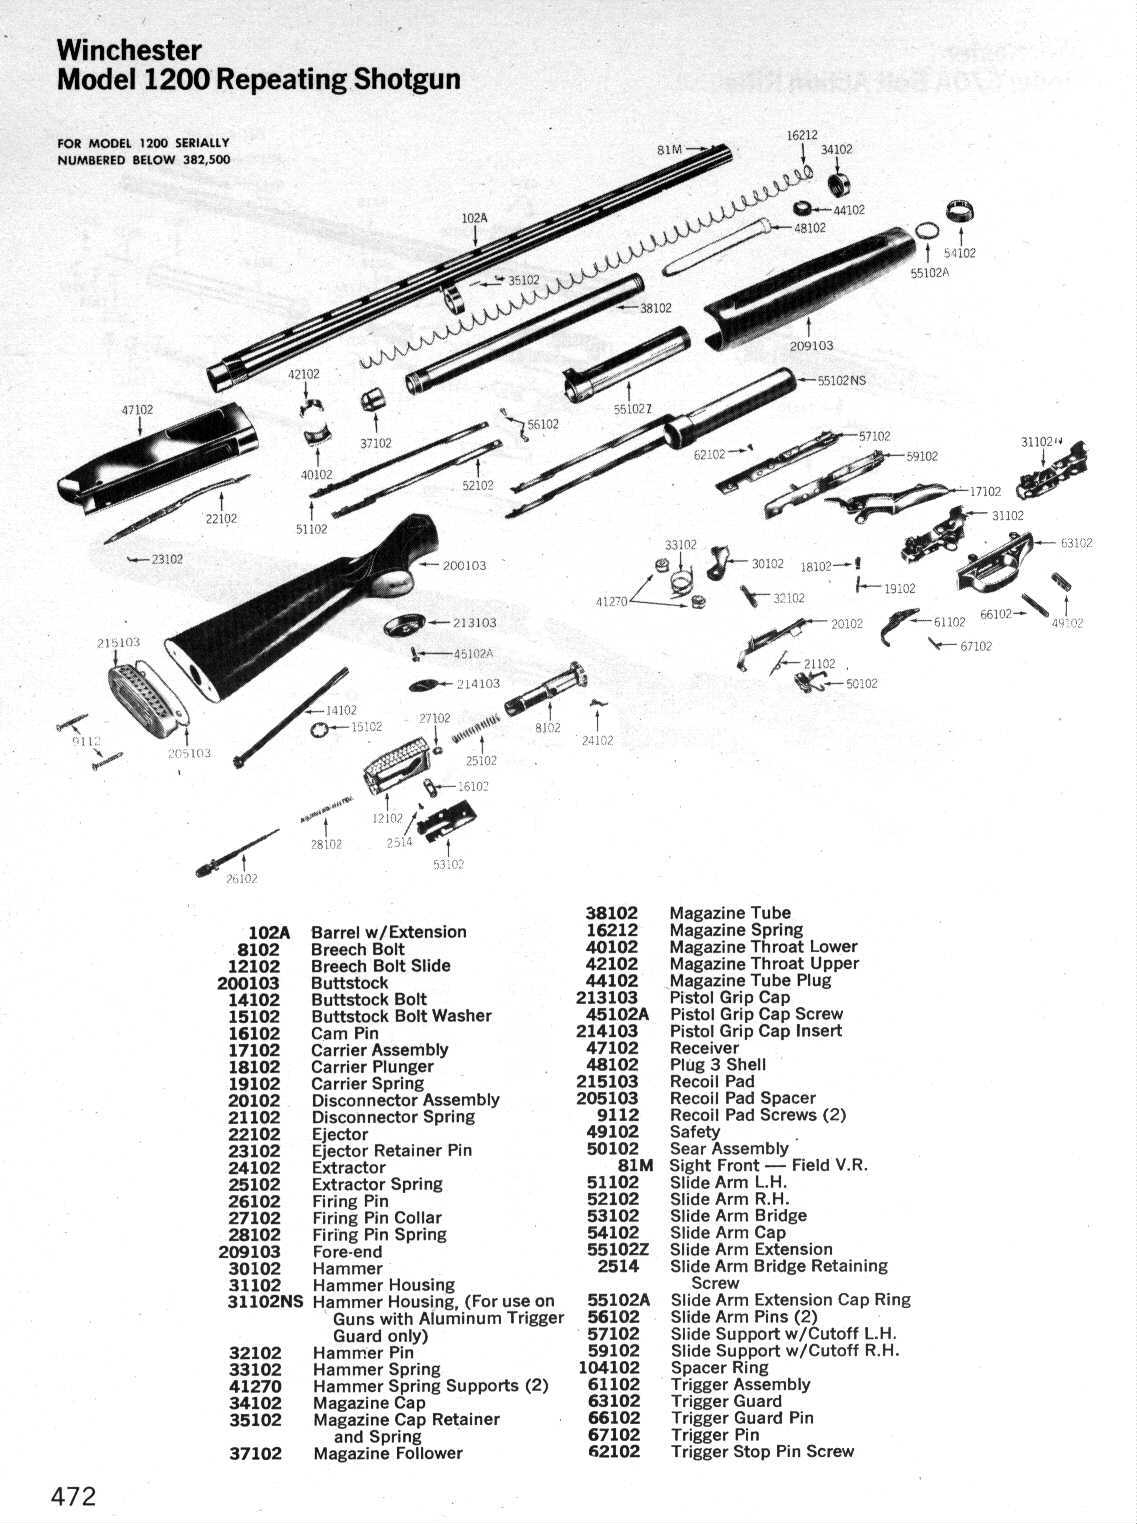 Win1200Schematic with regard to Marlin Glenfield Model 60 Parts Diagram